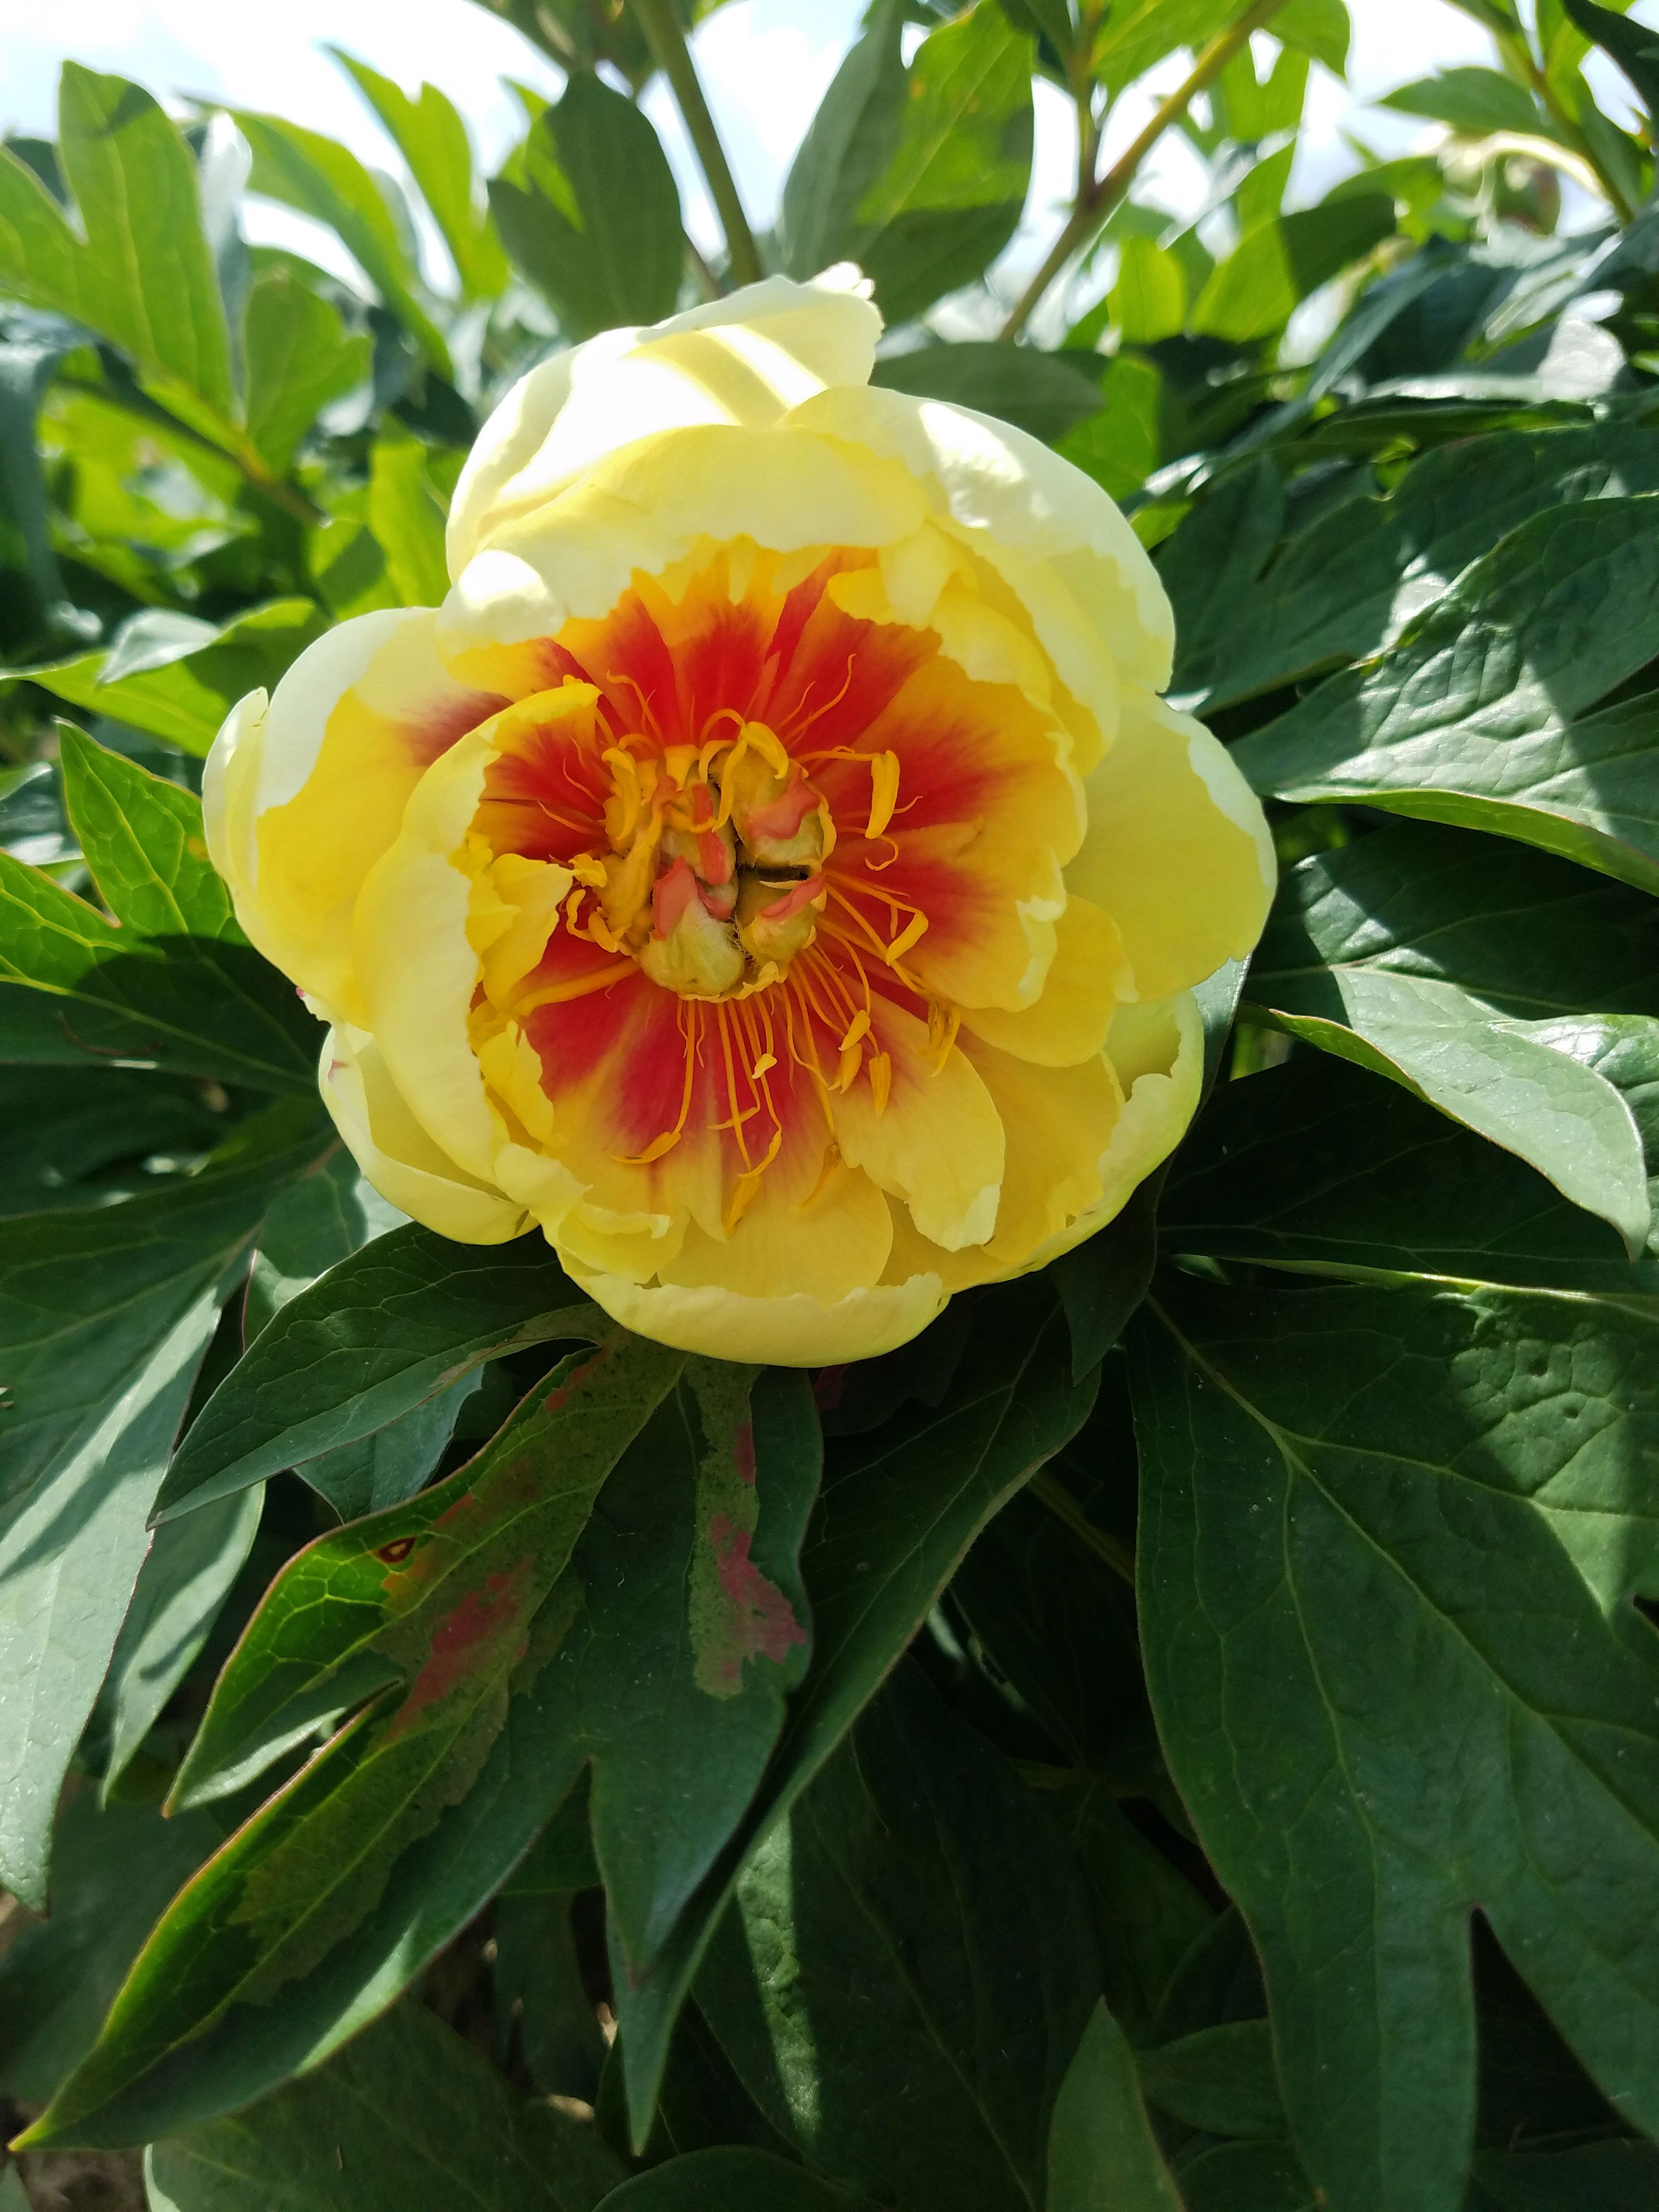 Tree Peony Type Flowers With Yellow Petals Lighter Colored At The Outer Ends With Large Red Flares And A Promin Peony Plants For Sale Bare Root Peonies Peonies